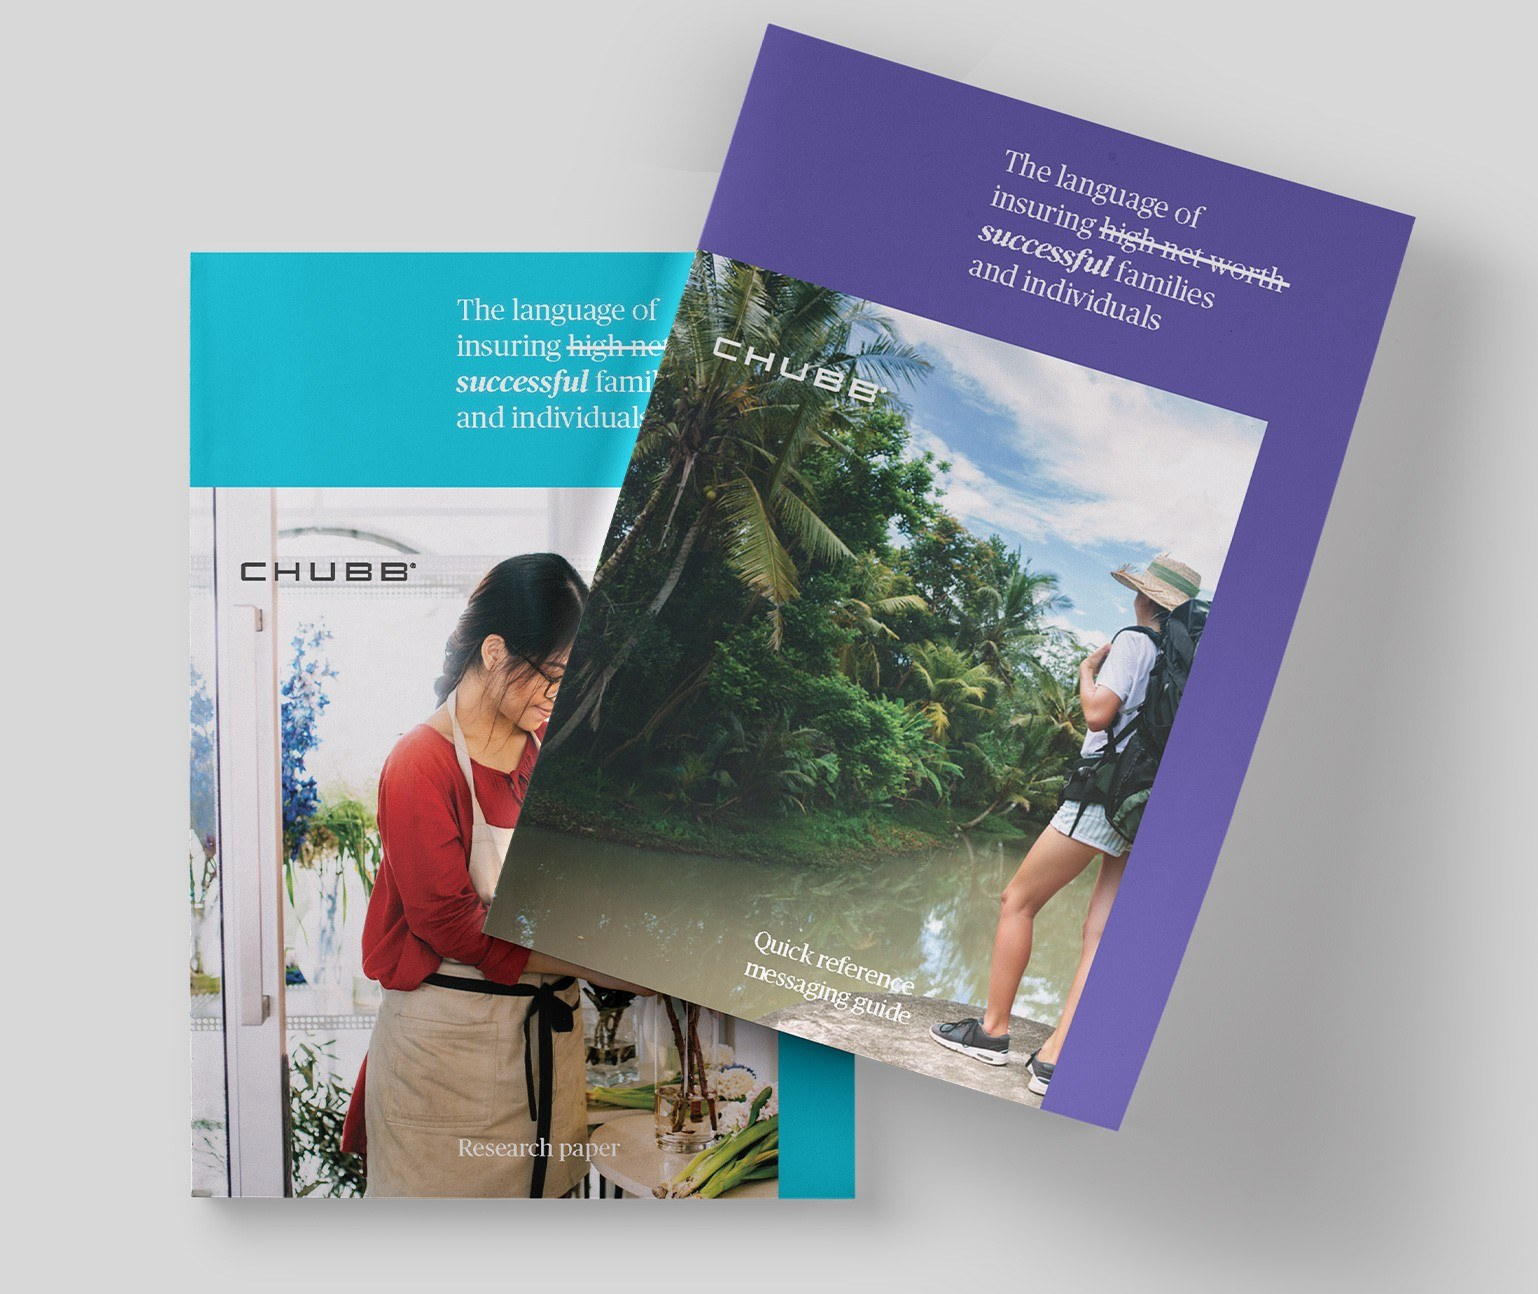 Two flagship brochures, one teal, one purple, overlapping on a grey background.